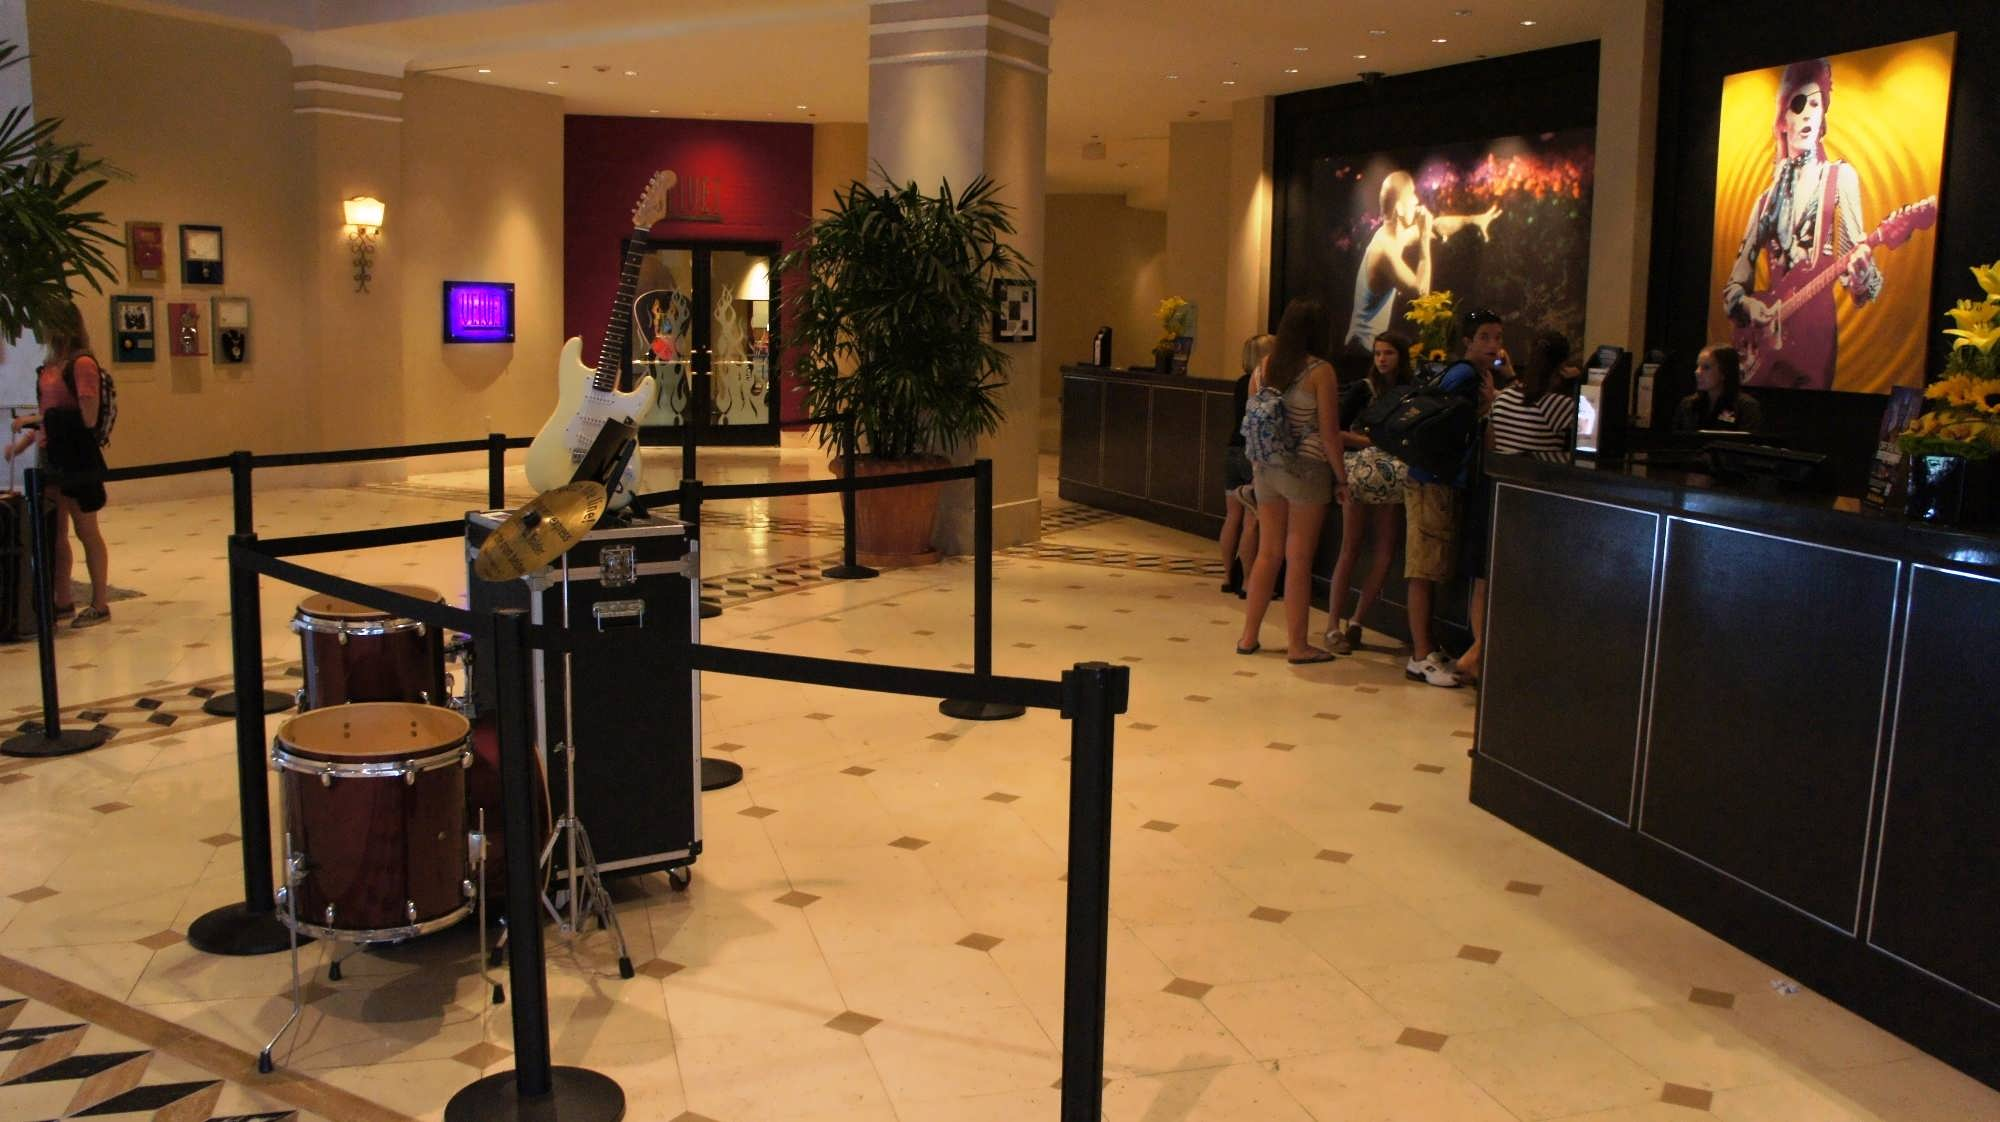 The check-in desk at the Hard Rock Hotel